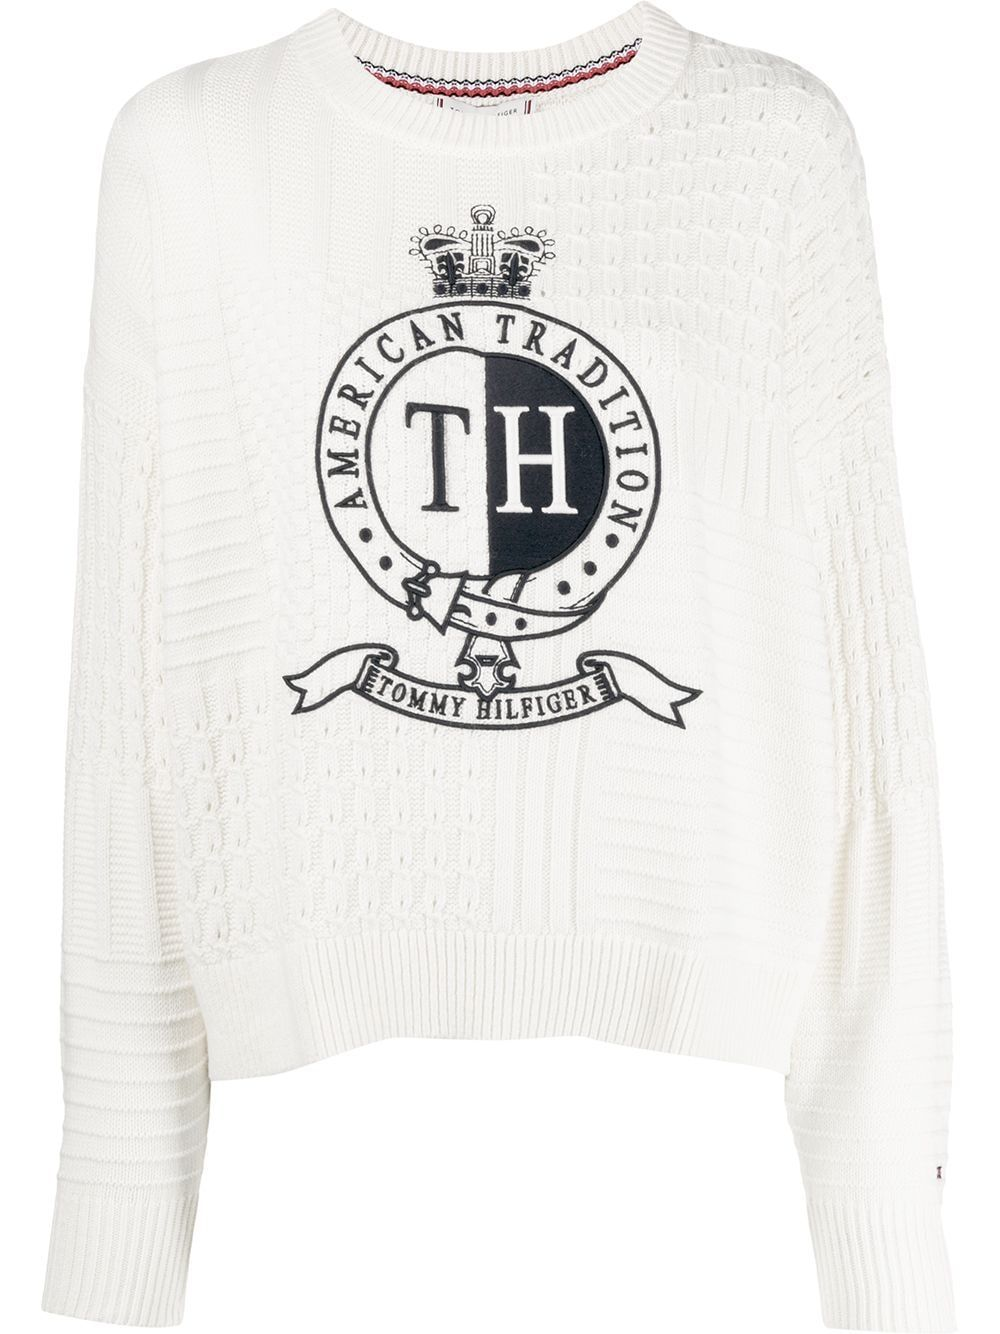 Embroidered Crest Sweater Tommy Hilfiger Embroidered Crests Sweaters [ 1334 x 1000 Pixel ]